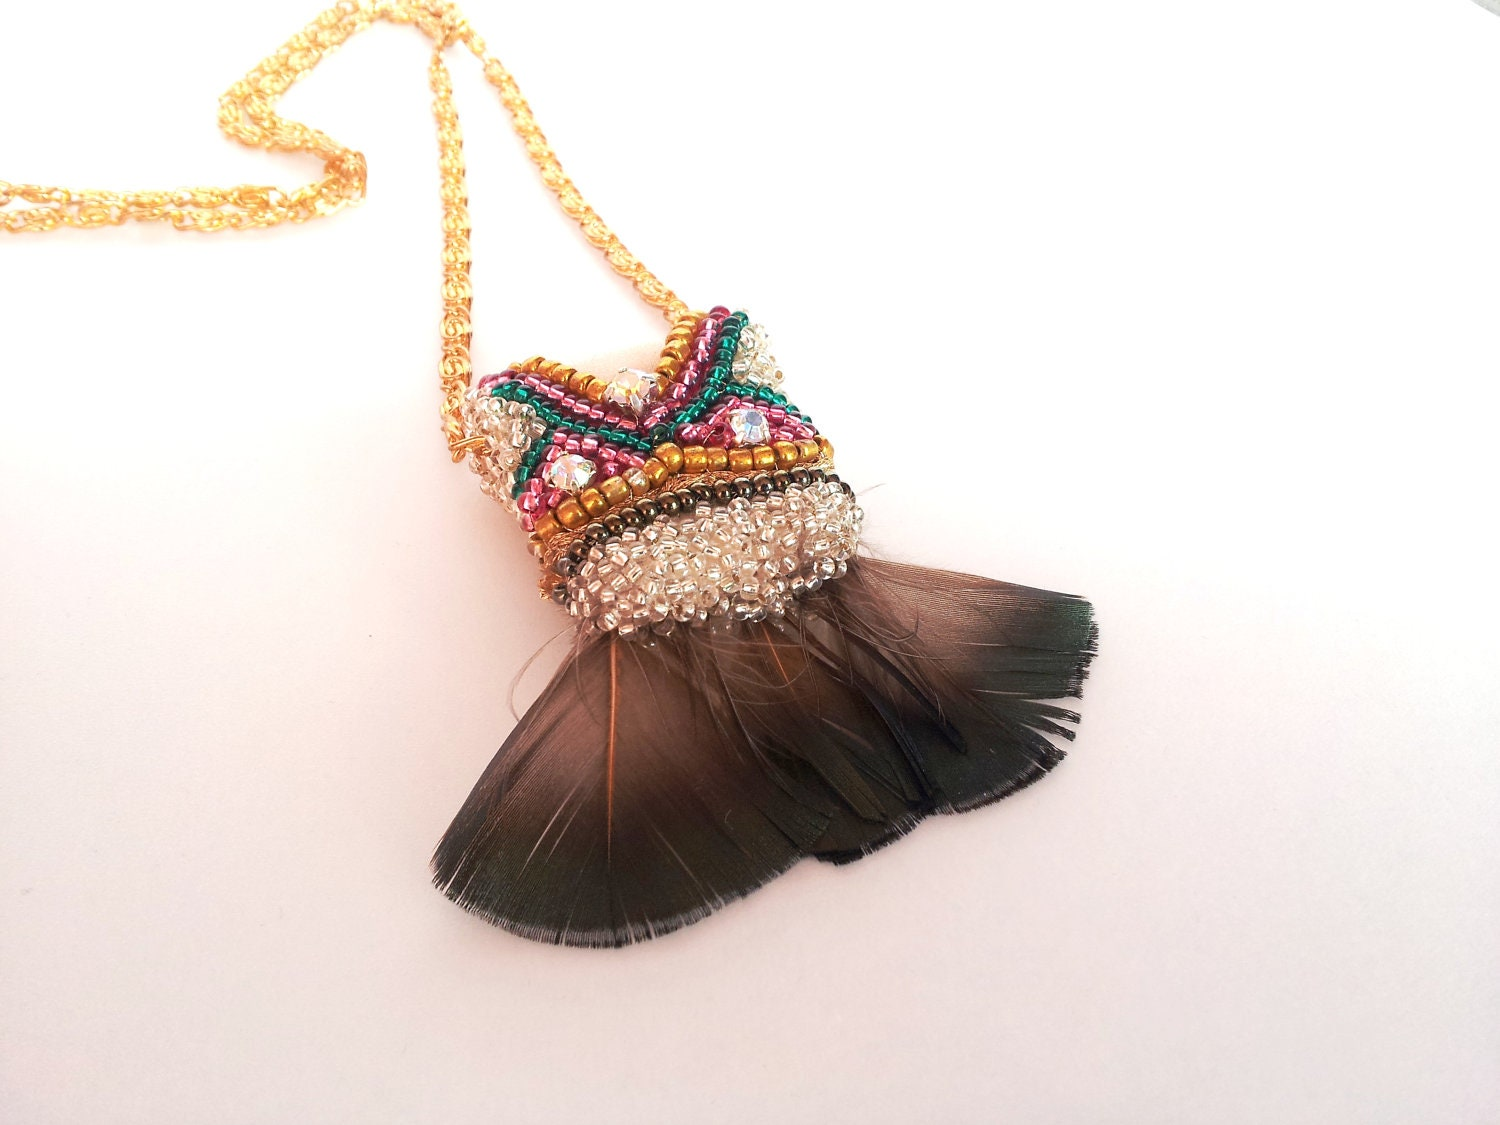 Pendant Necklace with feathers by iluztro